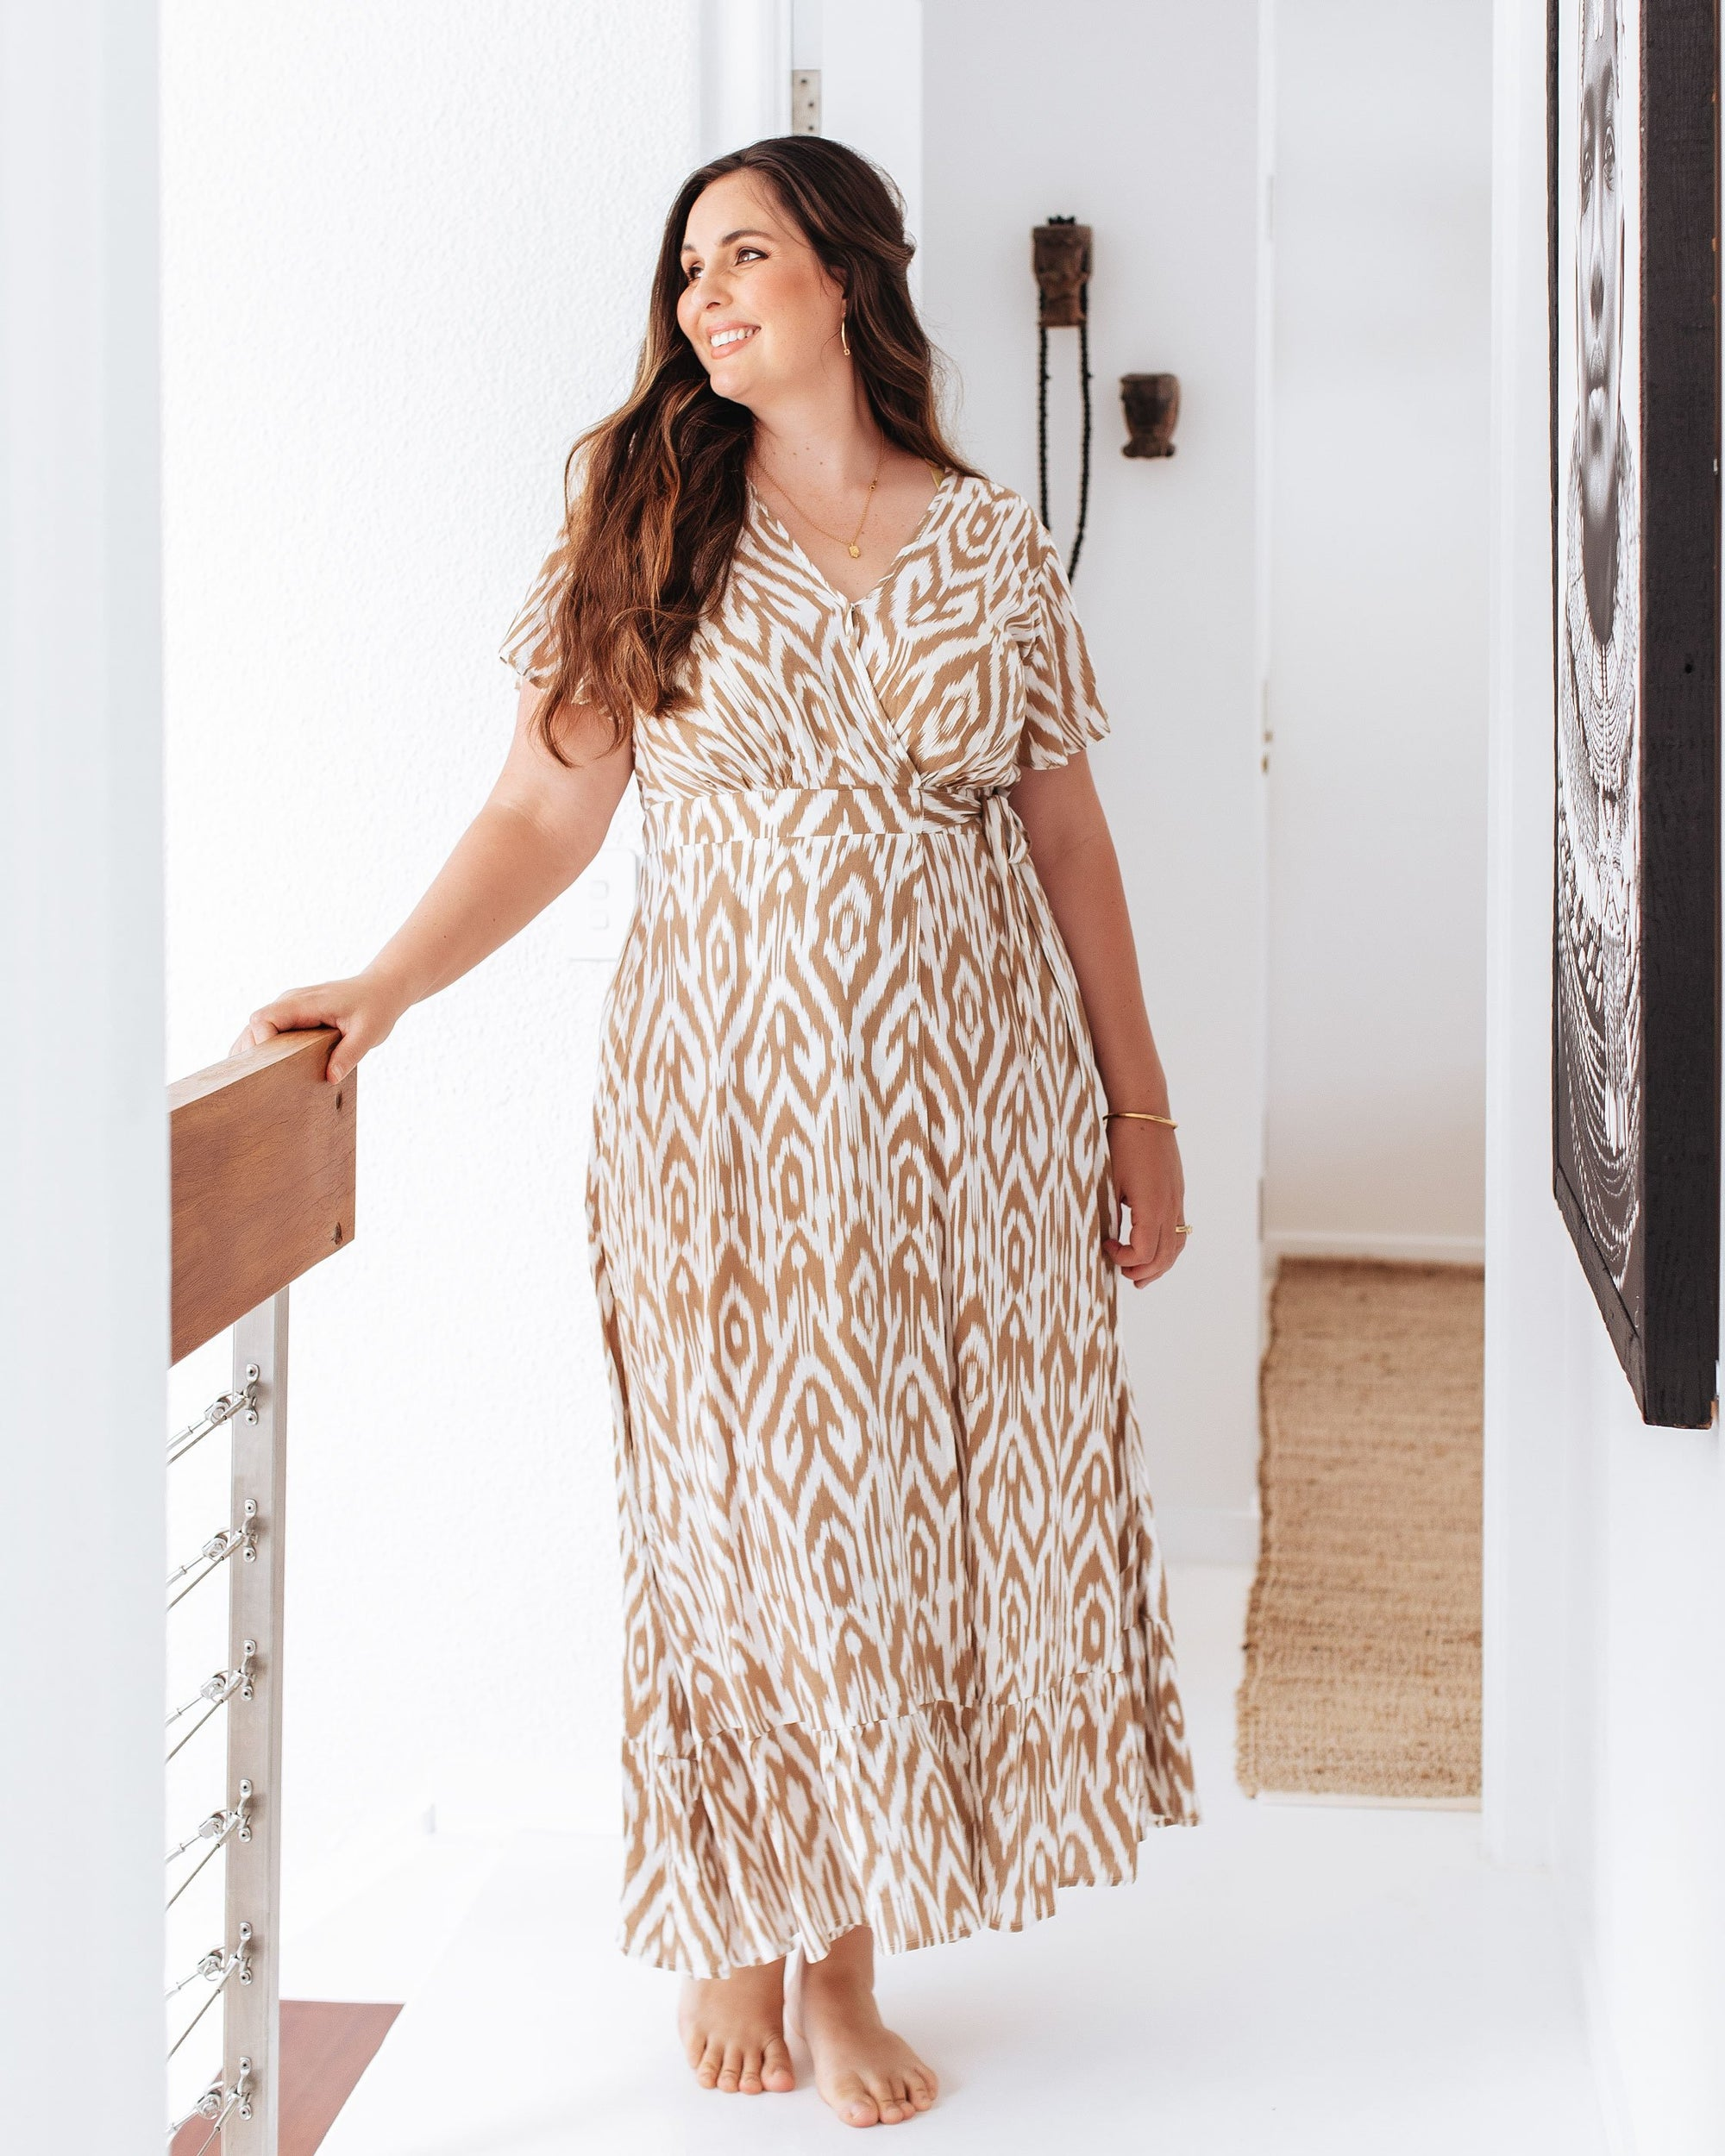 Statement Breastfeeding-Friendly Maxi Dresses   |   MOOLK